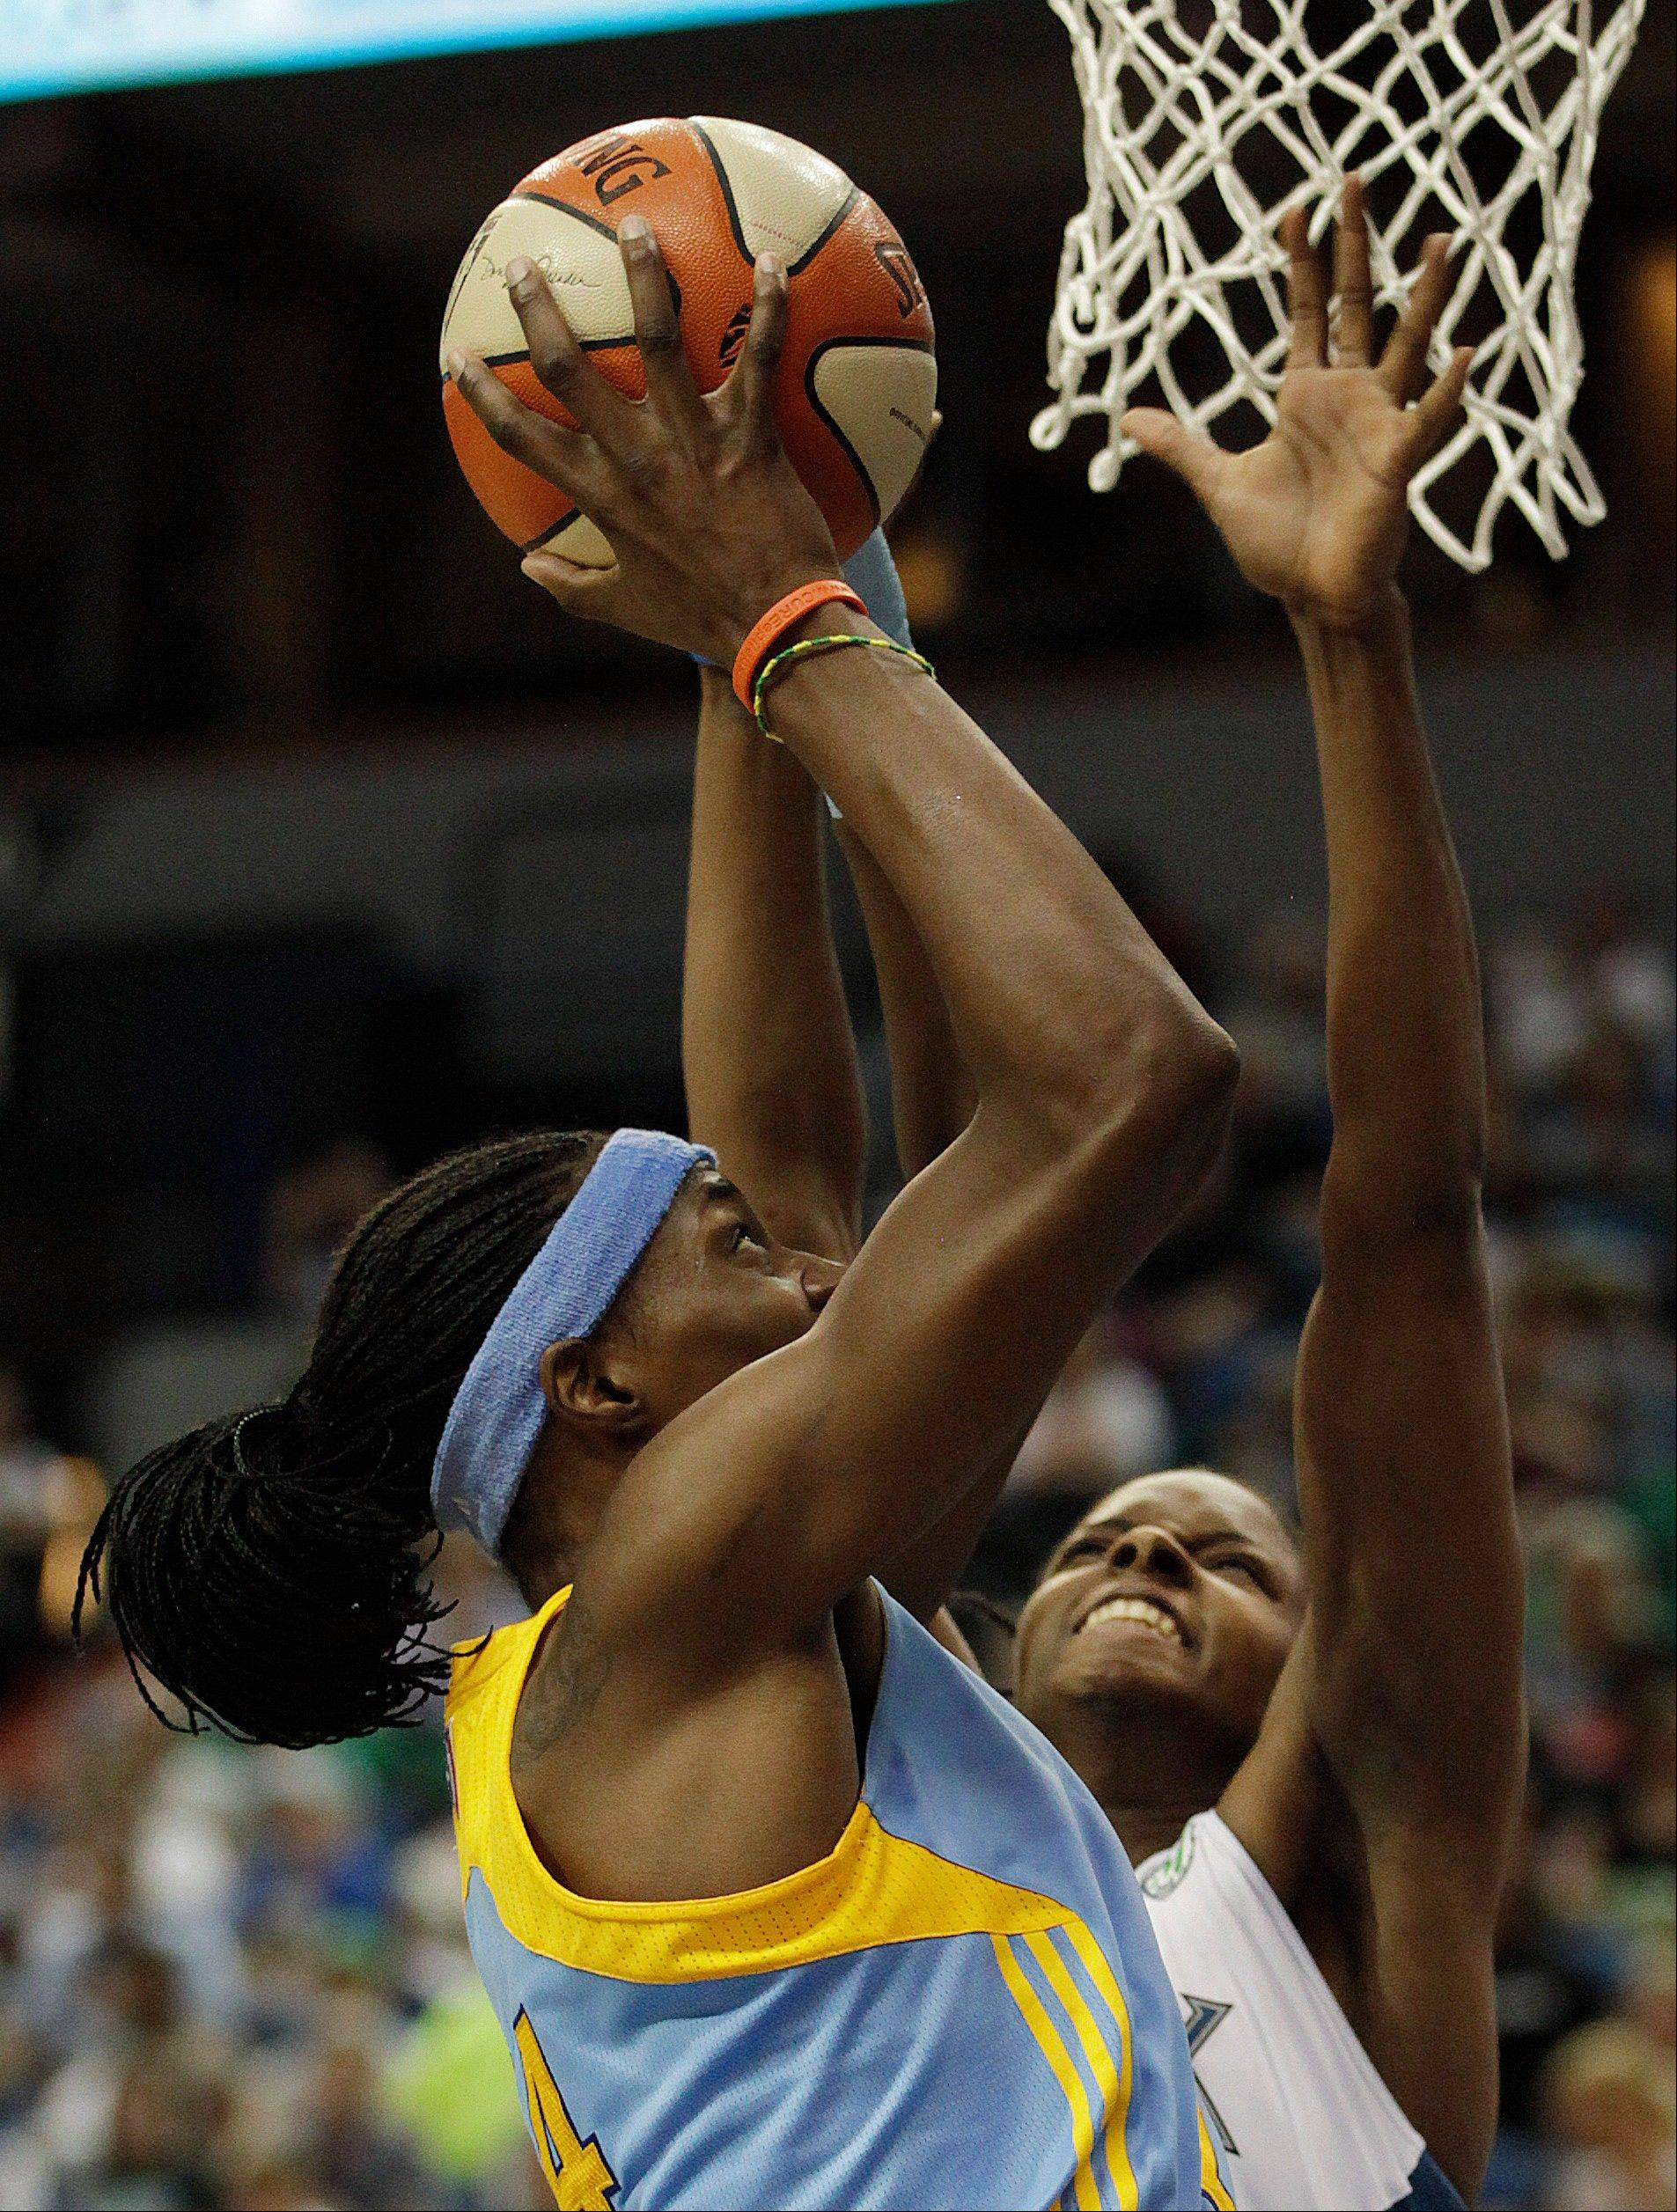 Chicago Sky center Sylvia Fowles has signed a multiyear deal to stay with the franchise. The Sky drafted Fowles in 2008 with the No. 2 overall pick, and last season she averaged 20 points and 10 rebounds per game.